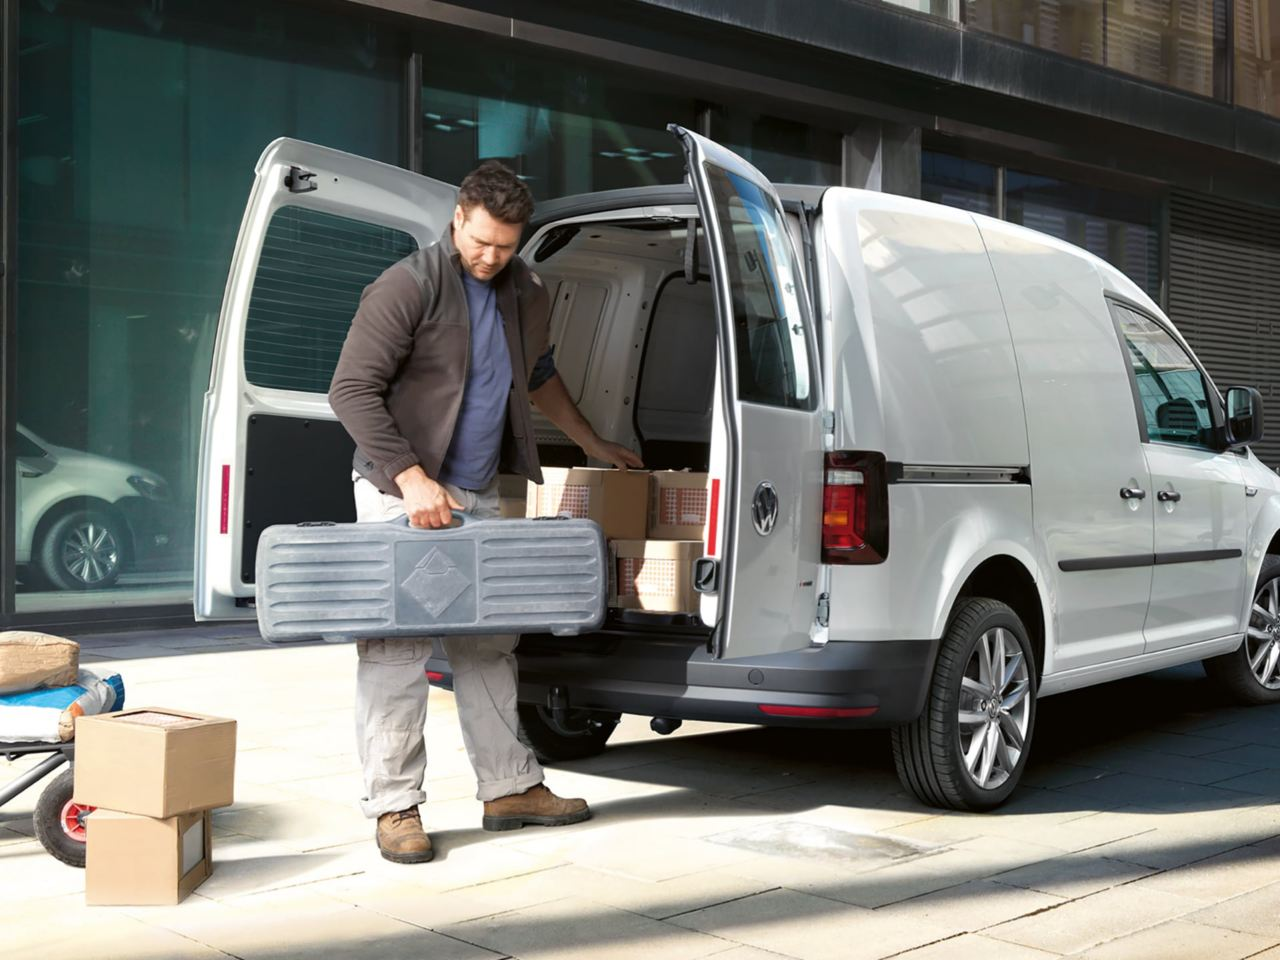 Cdc0700 Vw Caddy Commercial Delivery Van Loading Compartment